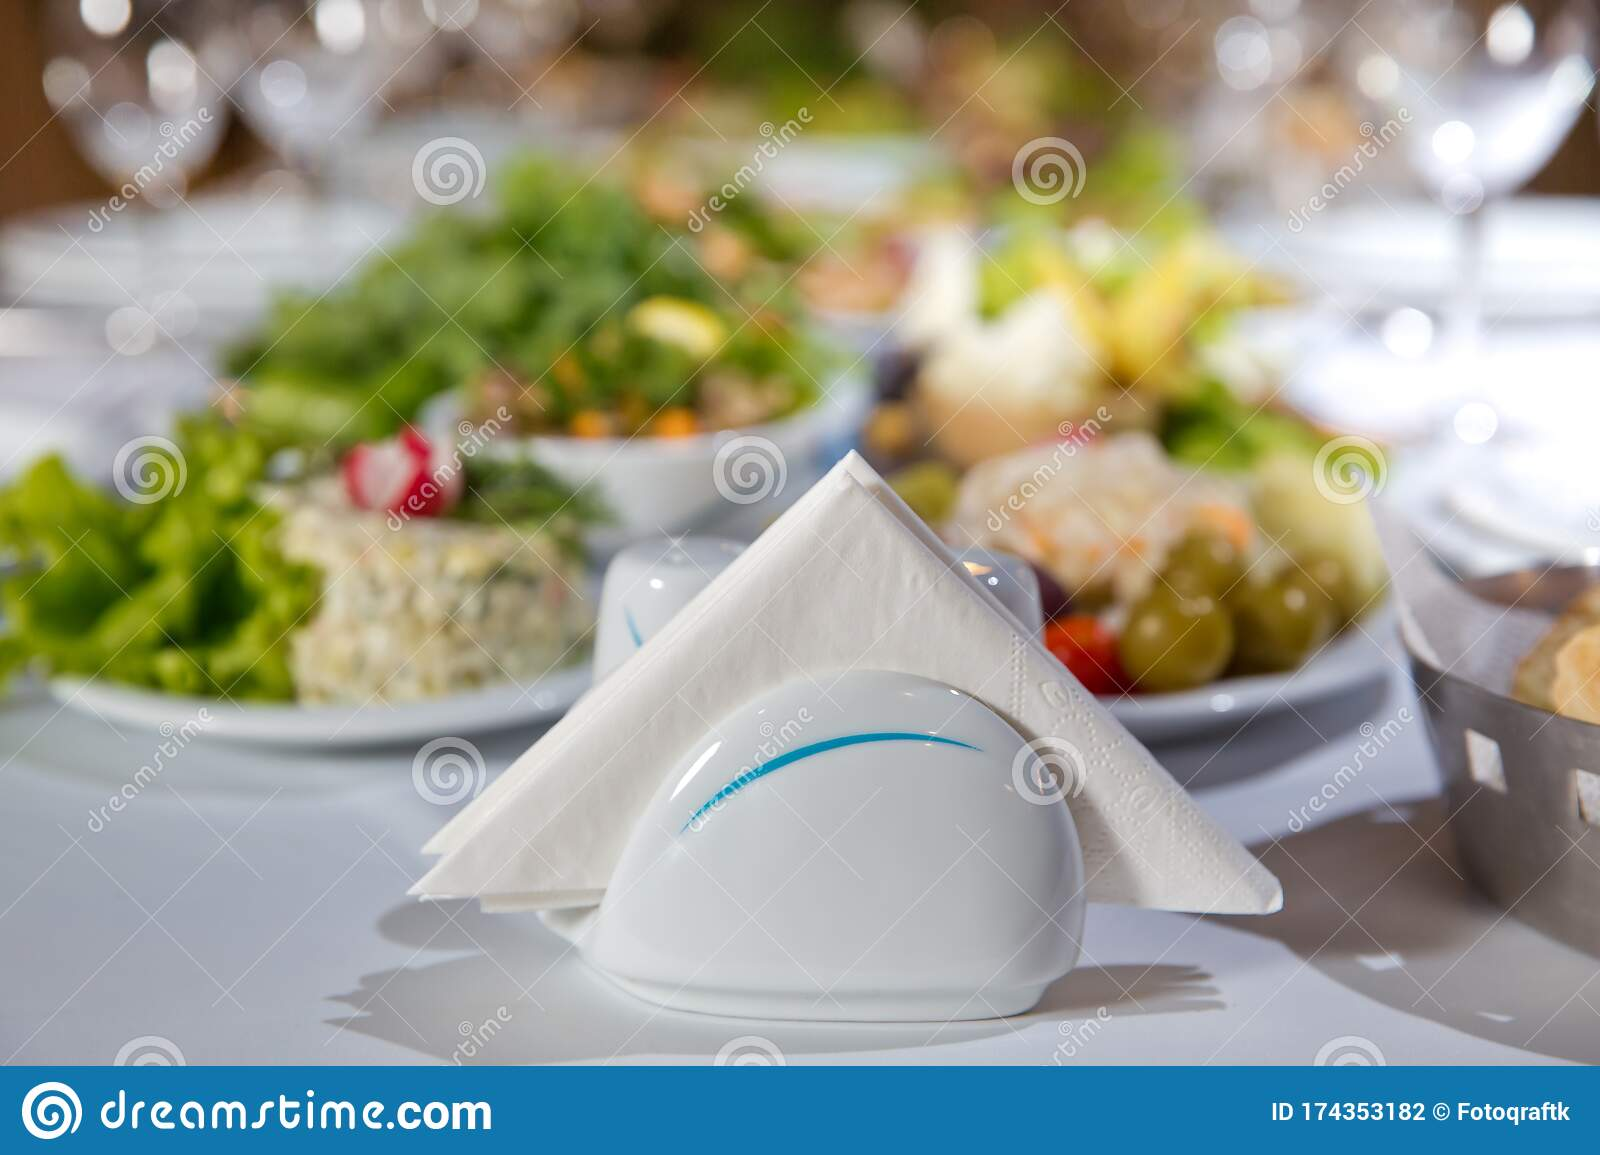 A Table In A Cafe Or Restaurant White Napkins In A Metal Napkin Holder Spices Salt And Pepper On A Woodeglass Table Panoramic Stock Photo Image Of Fancy Knife 174353182